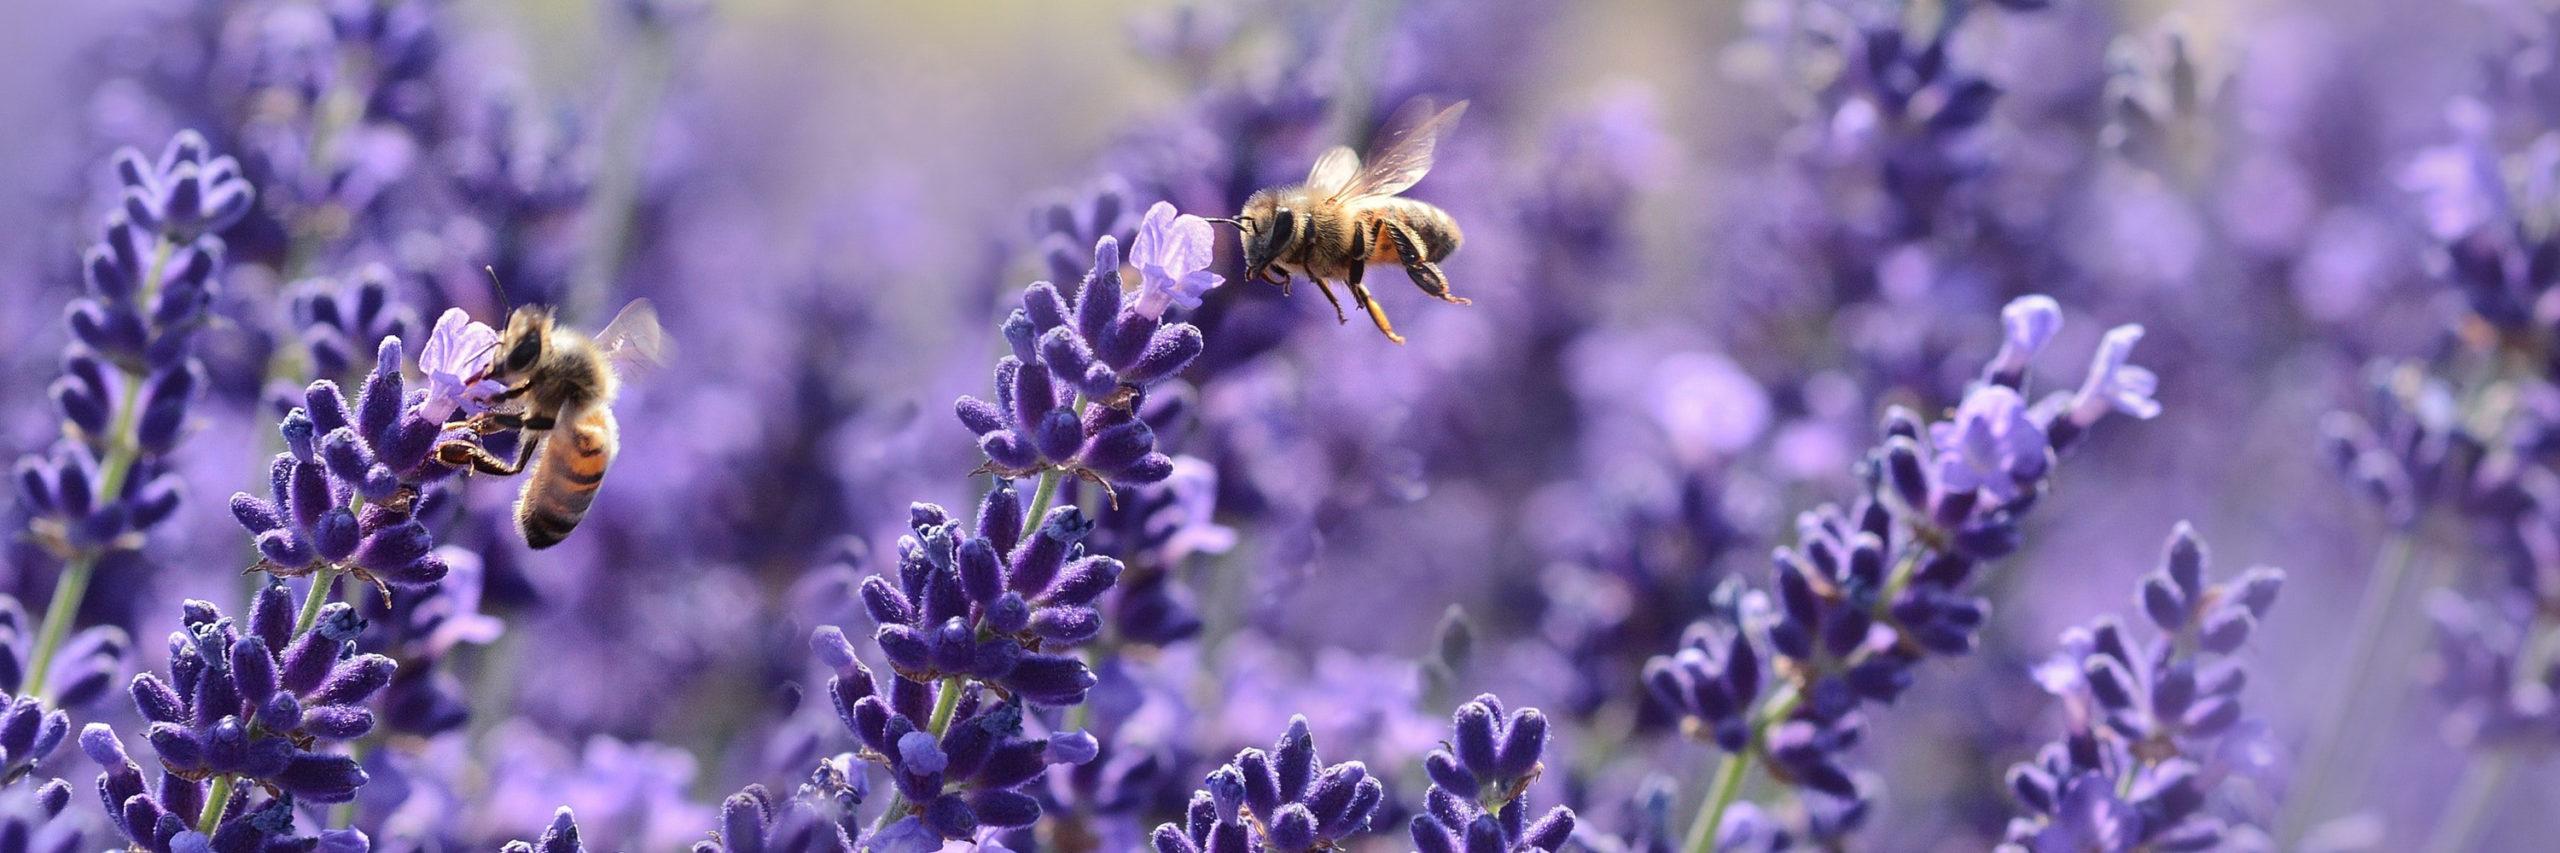 Two honey bees on lavender plants